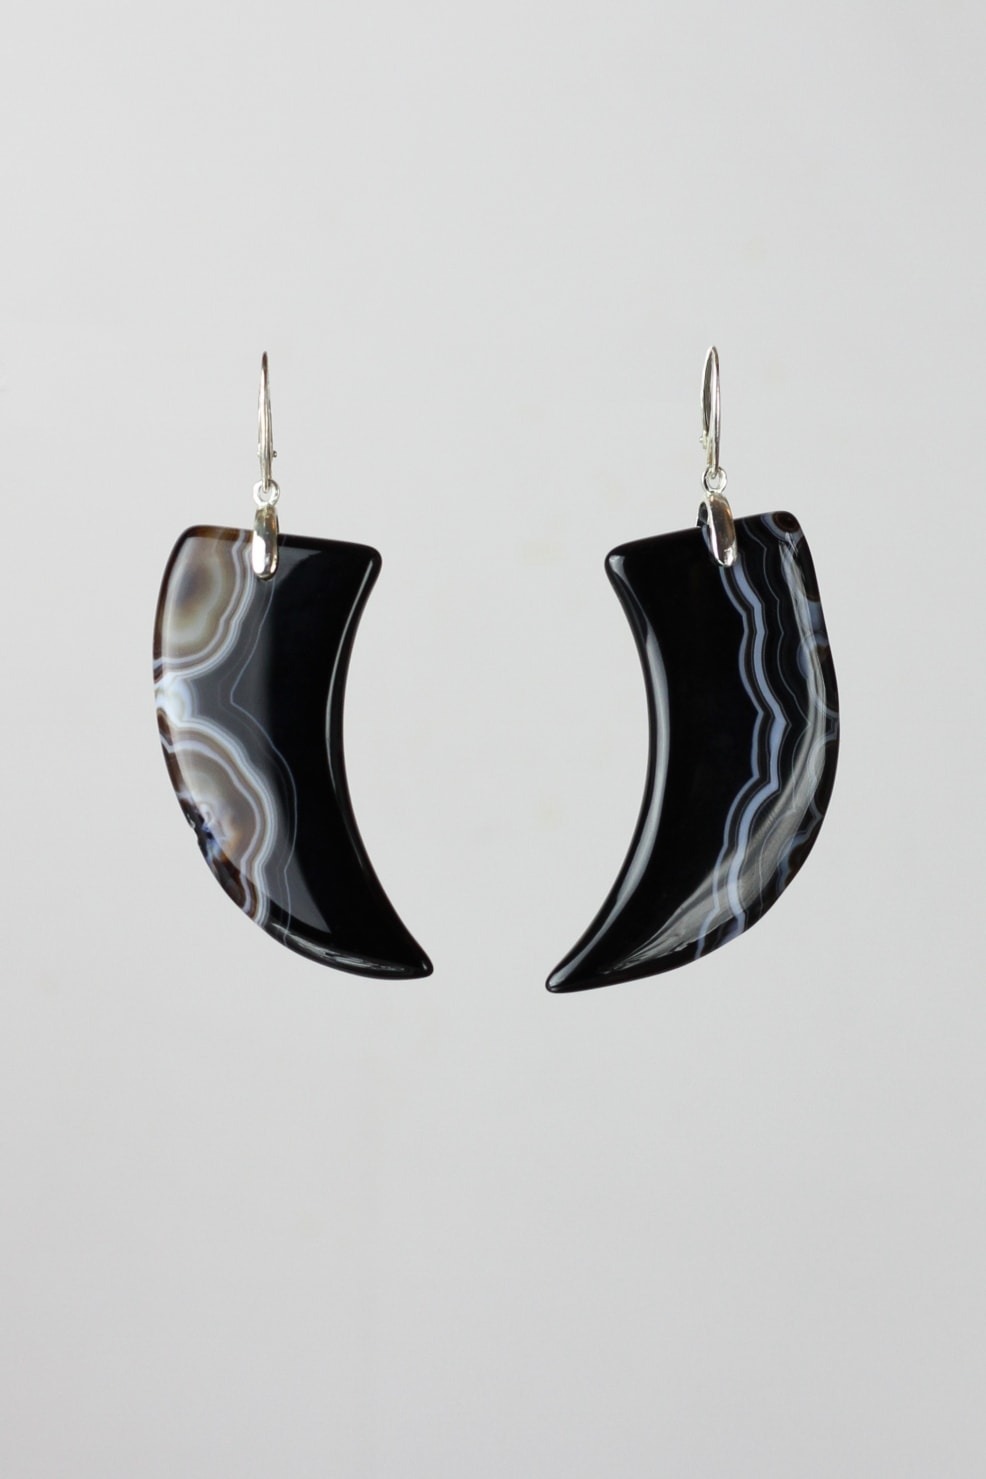 Claw-shaped agate and silver earrings